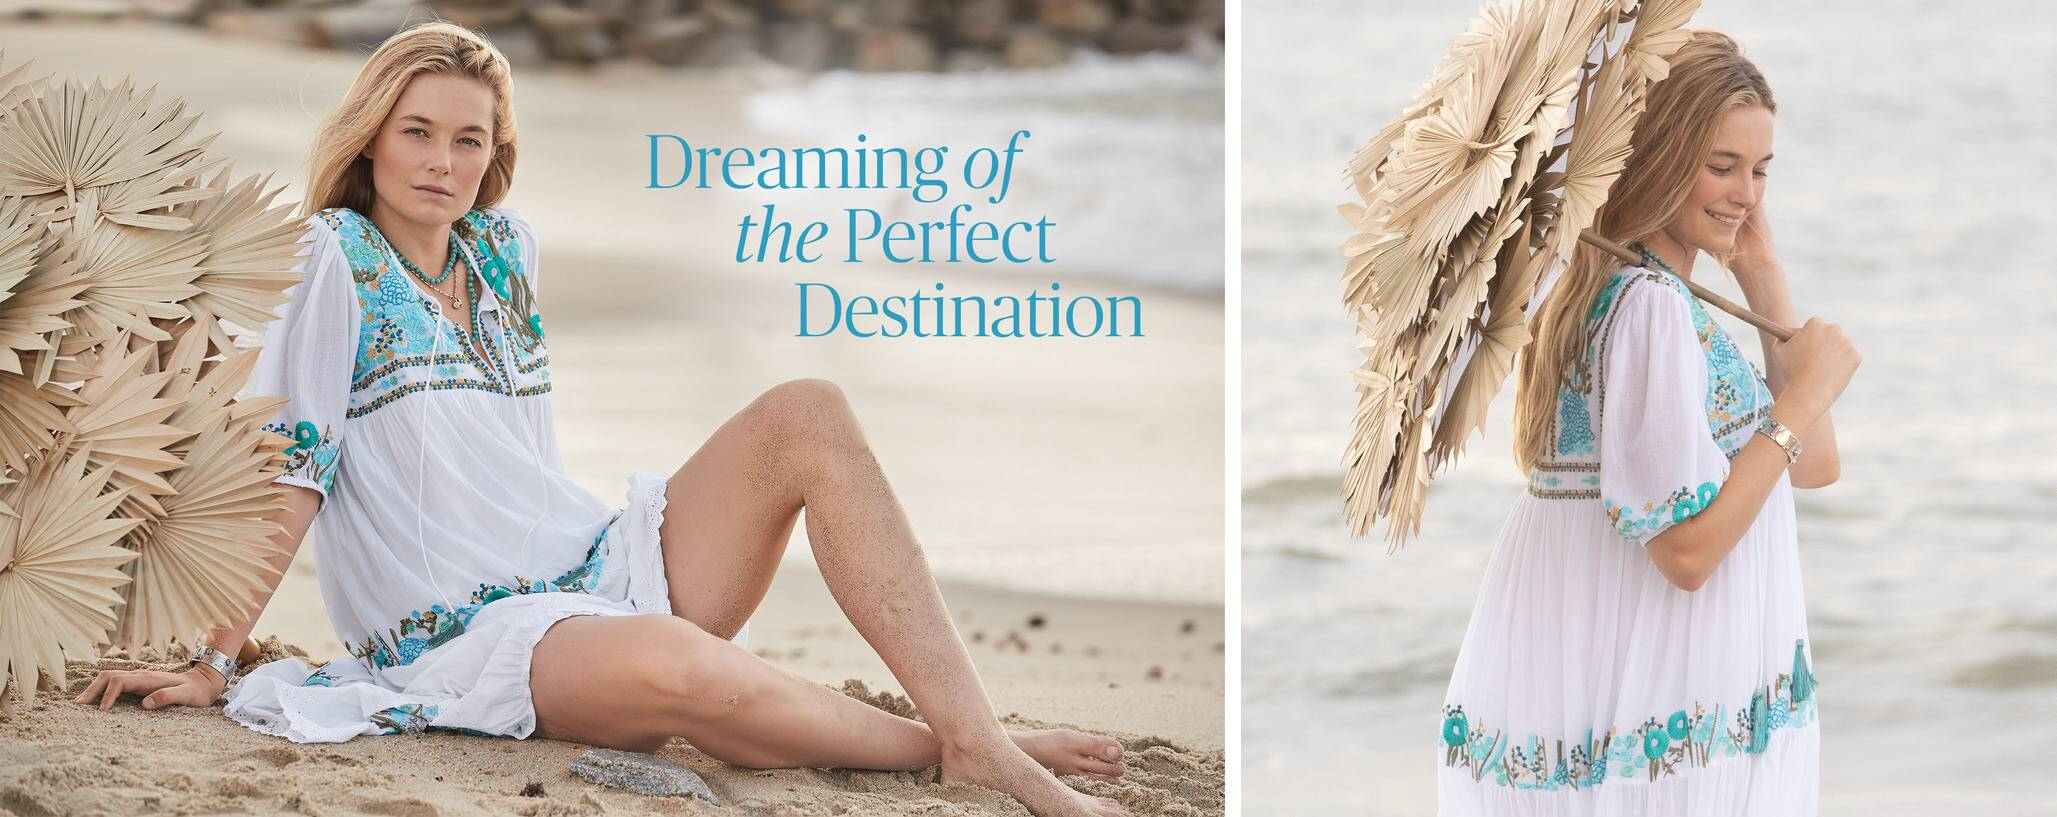 Dreaming of the Perfect Destination